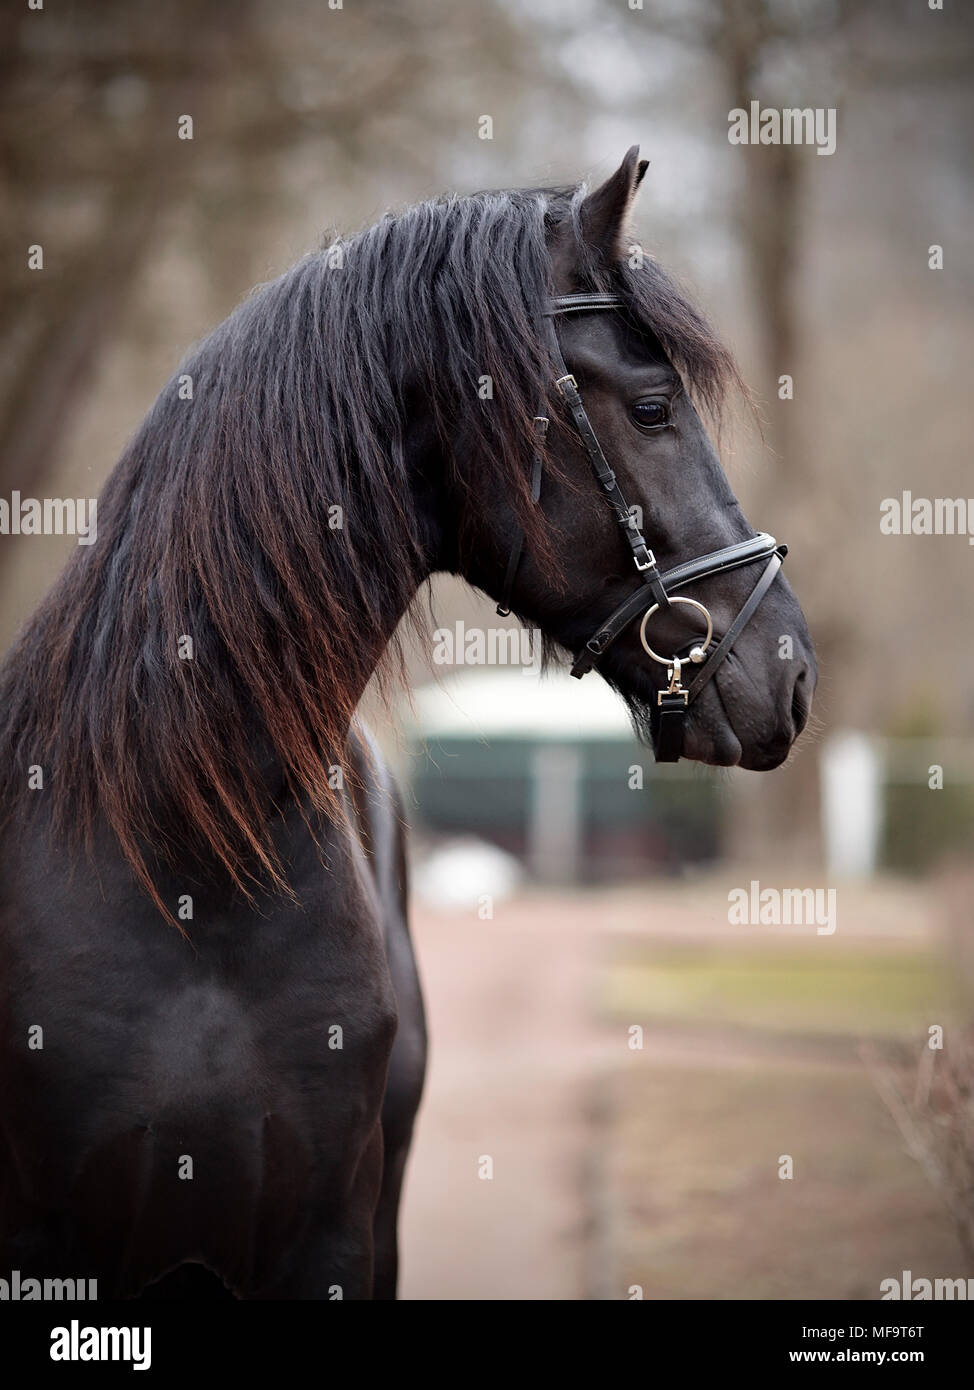 Black stallion. Portrait of a sports black horse. Thoroughbred horse. Beautiful horse. Sports horse. - Stock Image